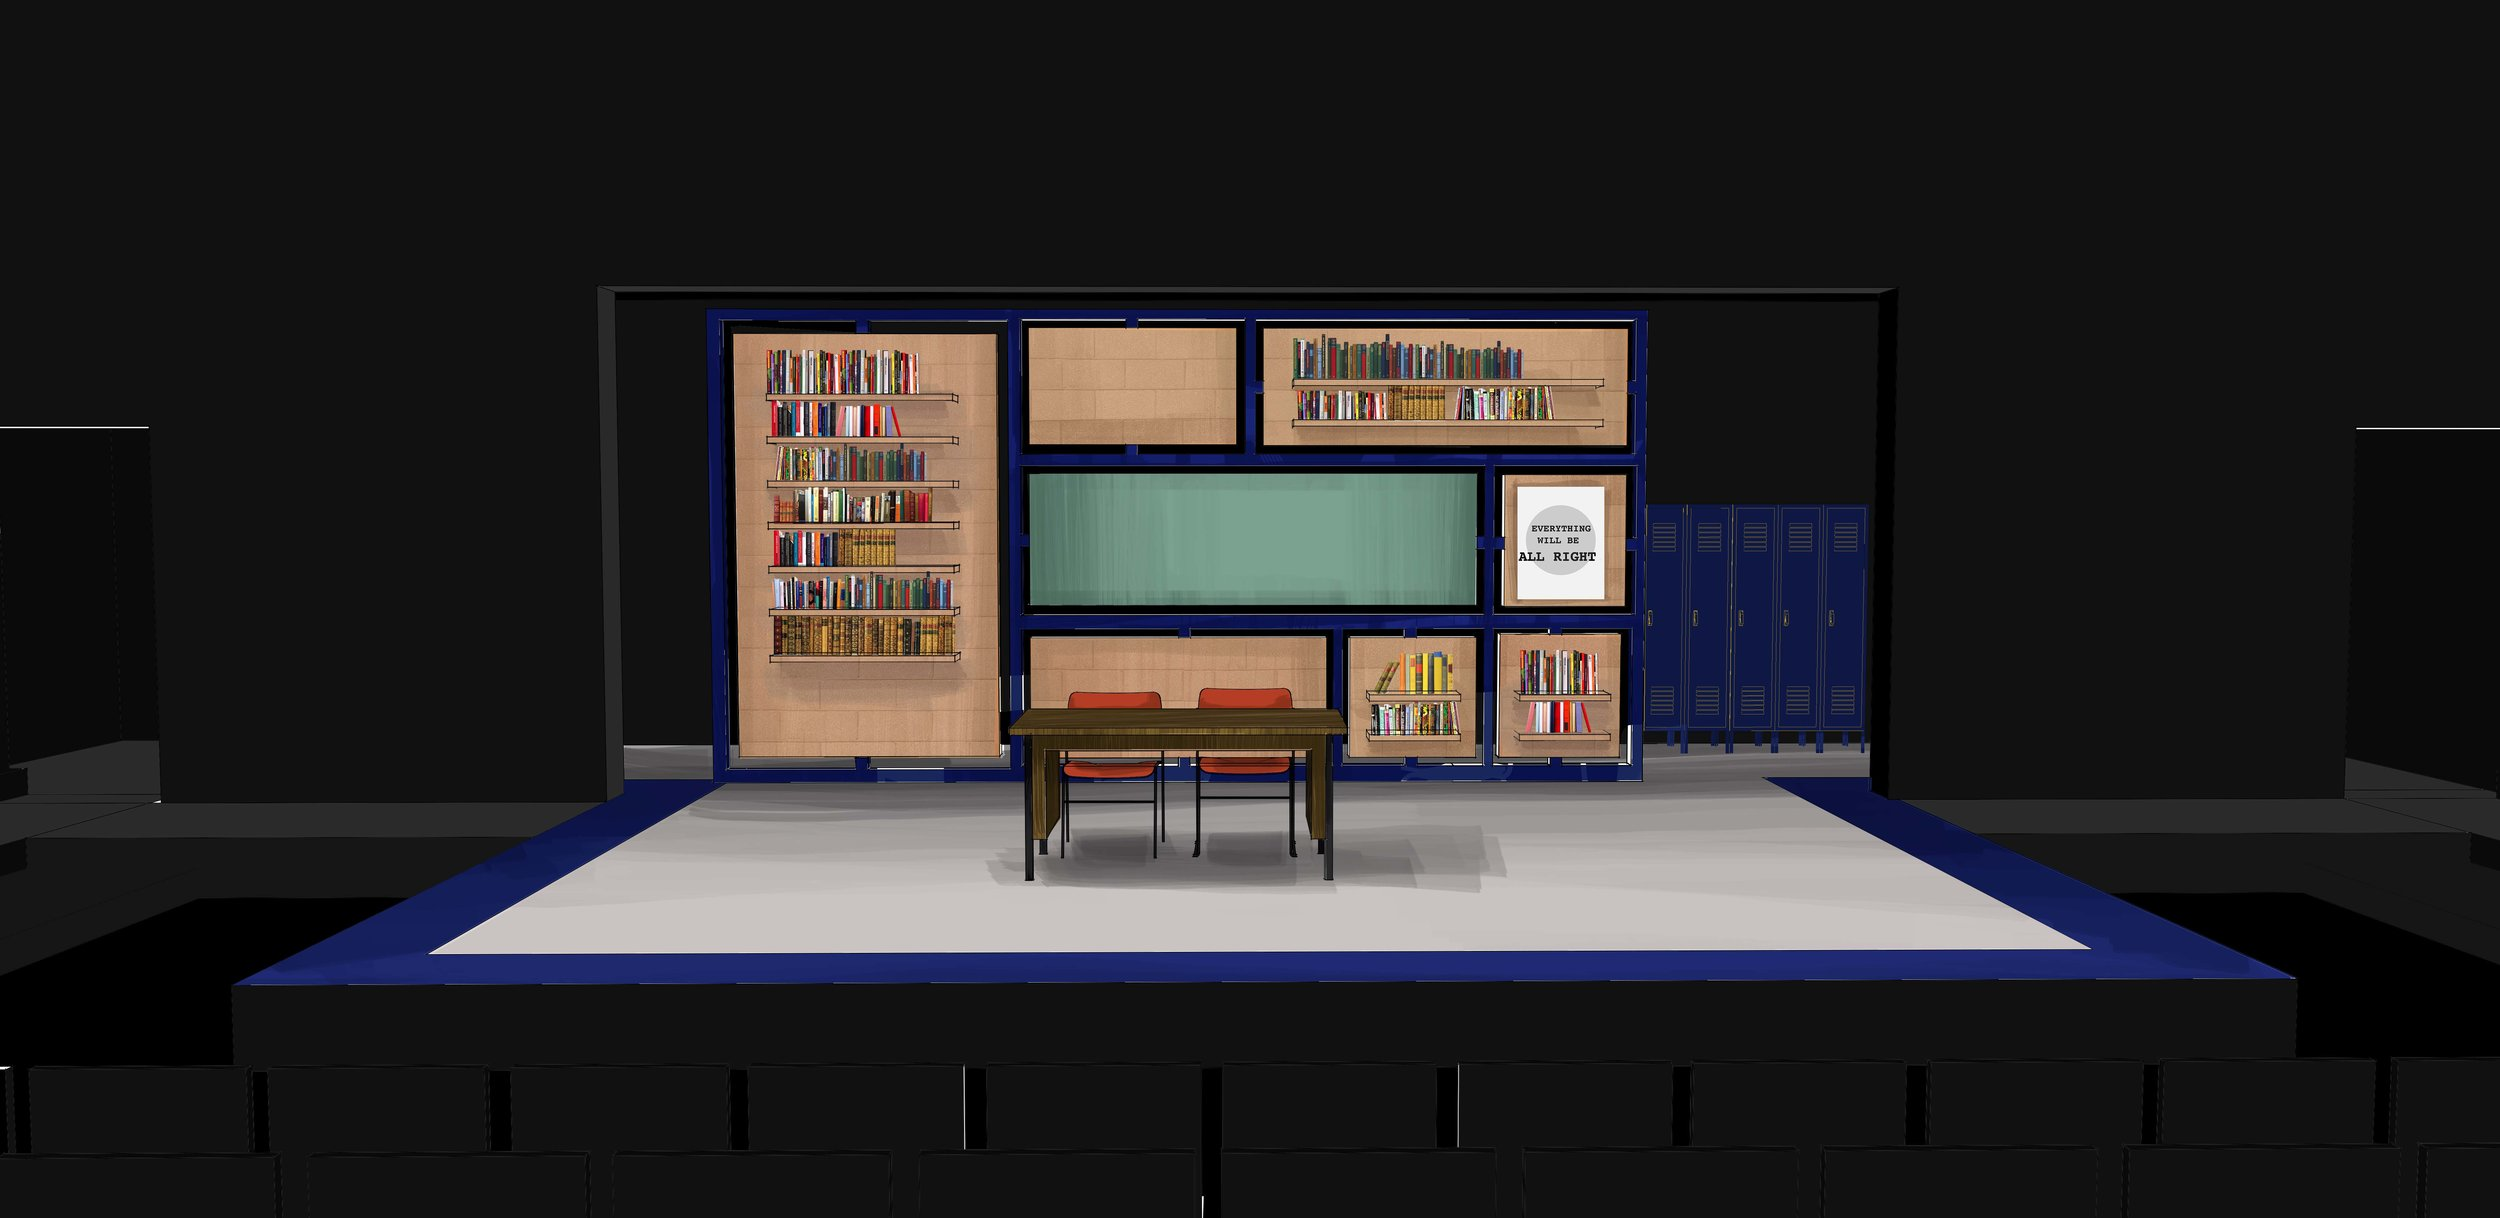 Theatre rendering for 'The Dream of the Burning Boy' by David West Read - the library